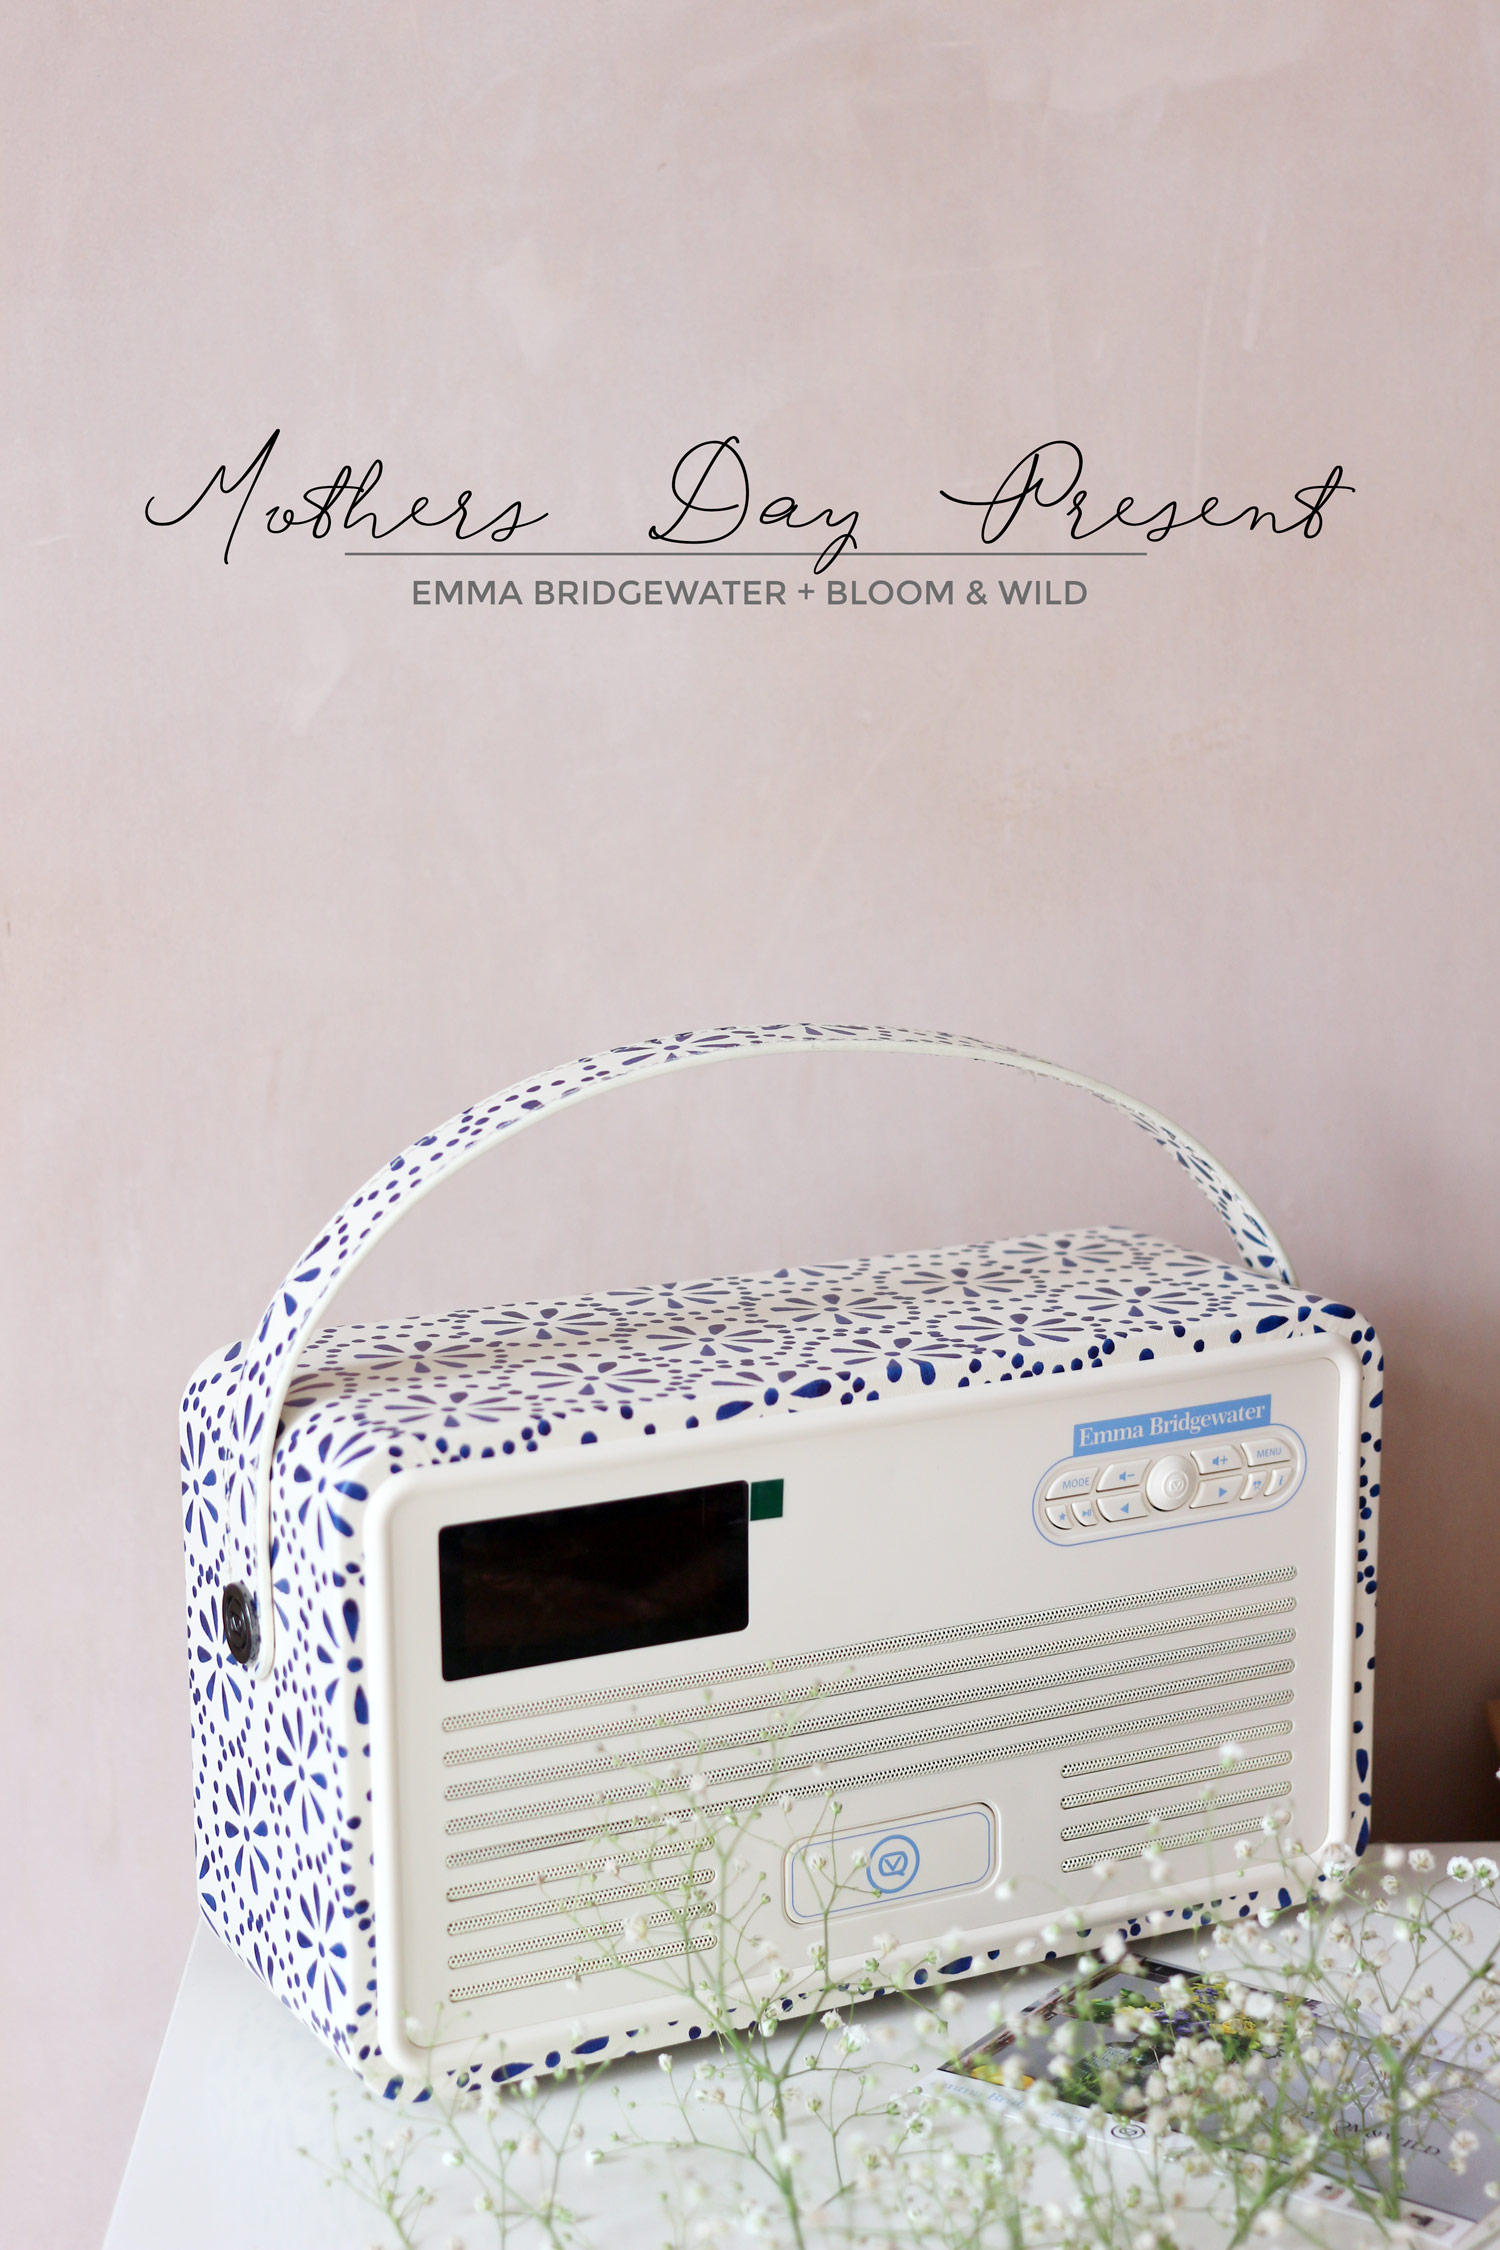 mothers-day-present-bloom-and-wild-emma-bridgewater-digital-radio-offer